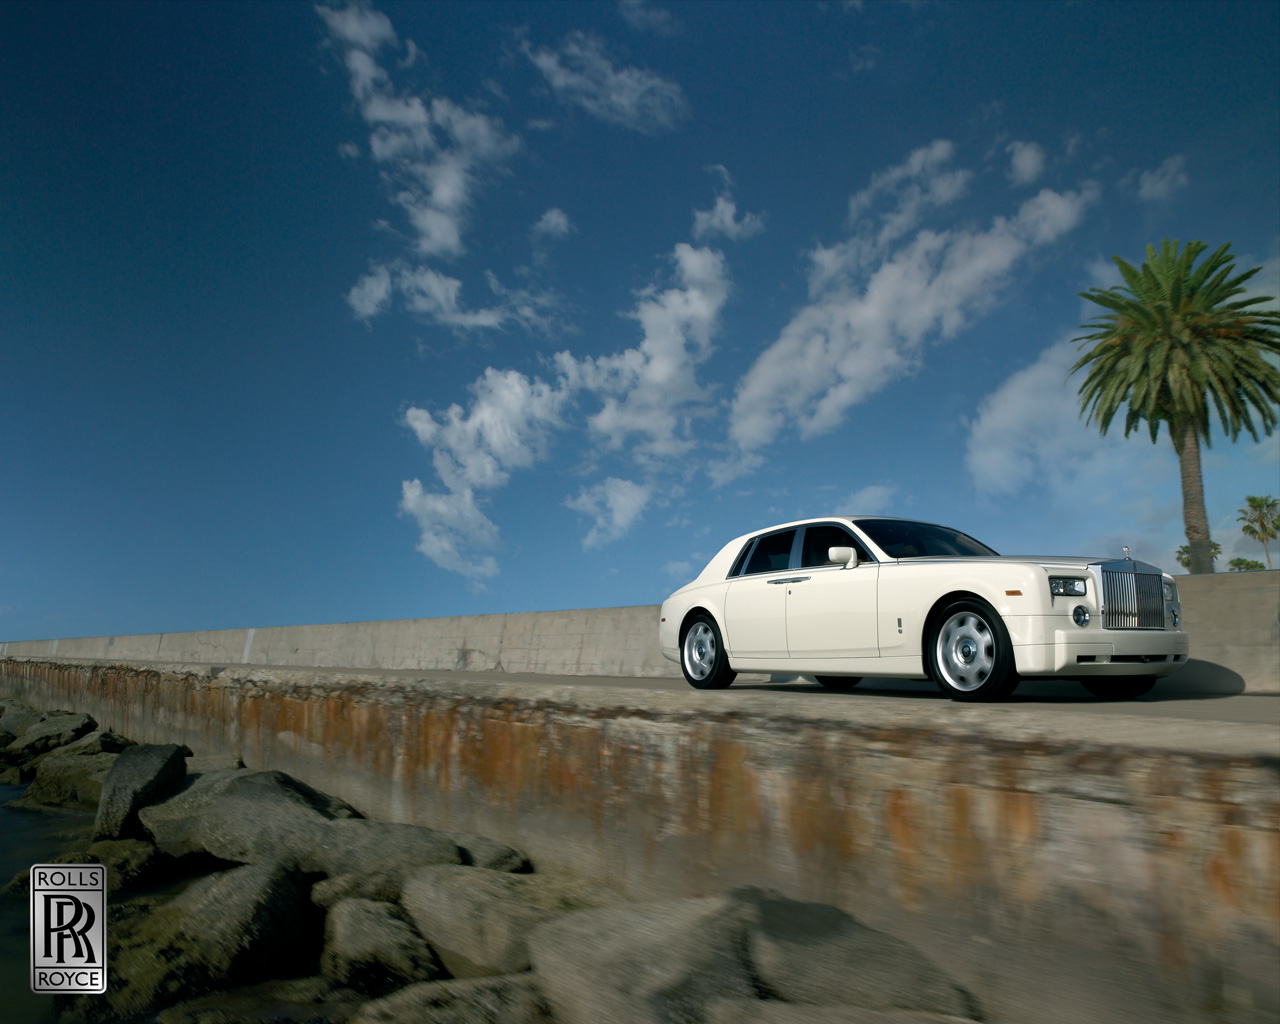 Rolls-Royce Phantom Series I - image courtesy of Rolls-Royce Motor Cars